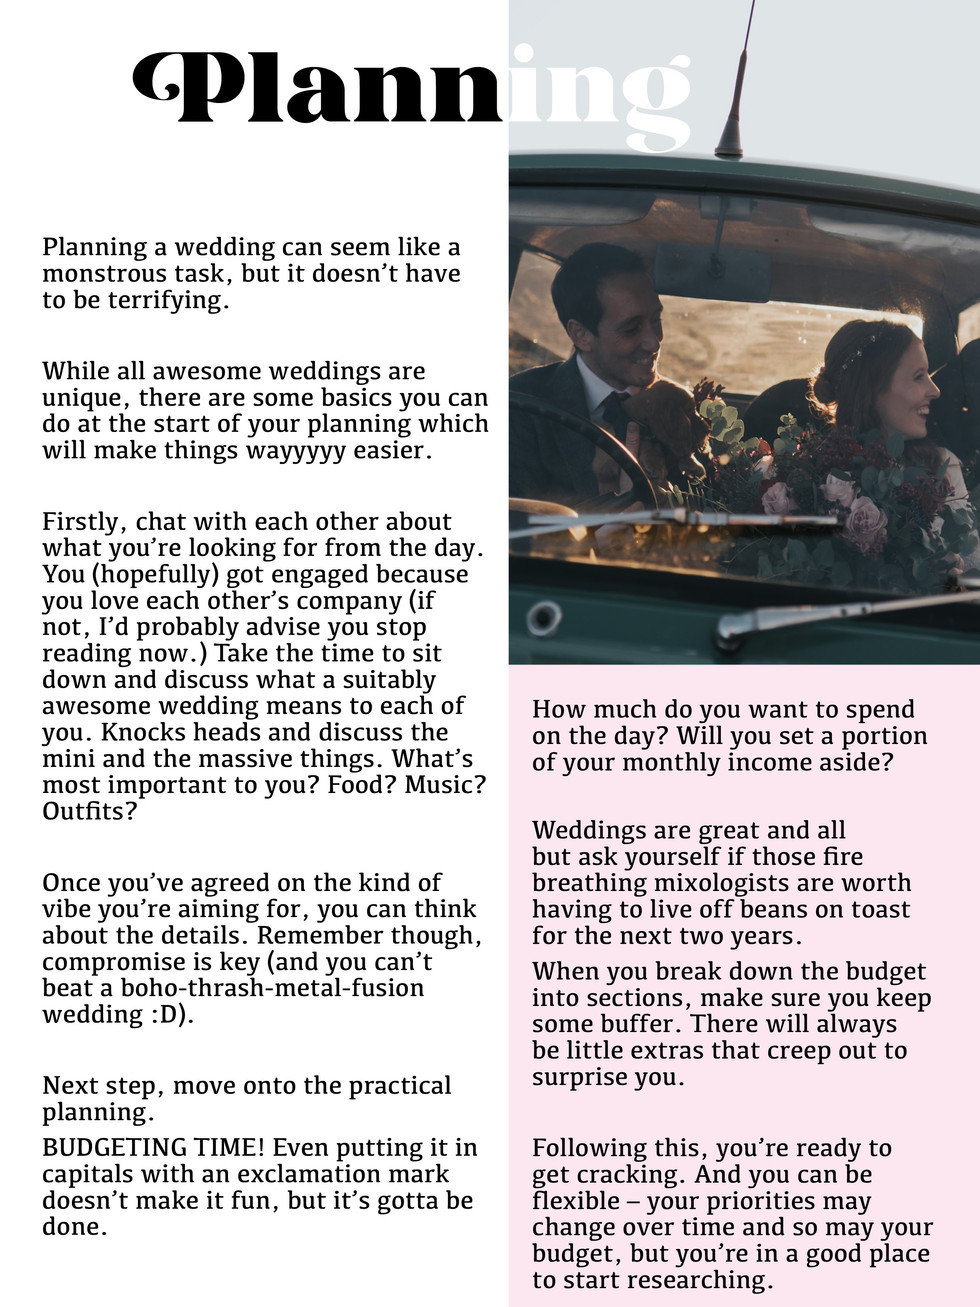 Wedding planning guide3.jpg